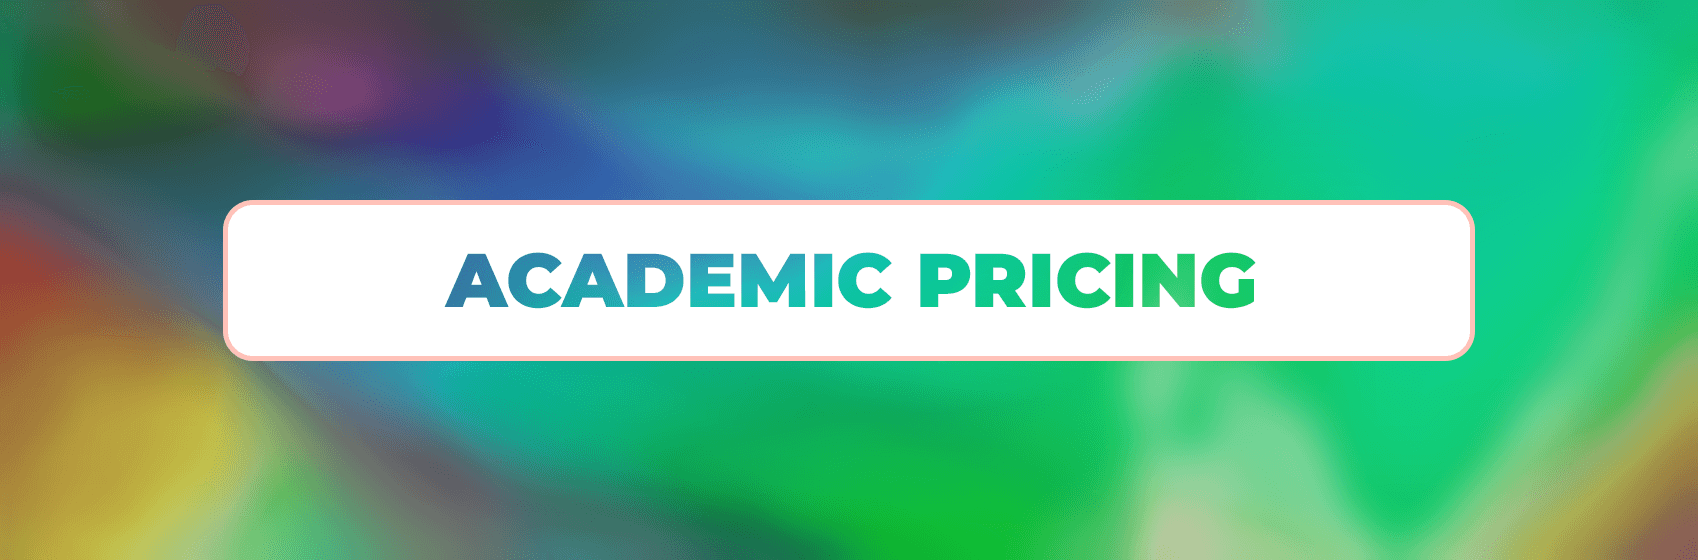 academic pricing